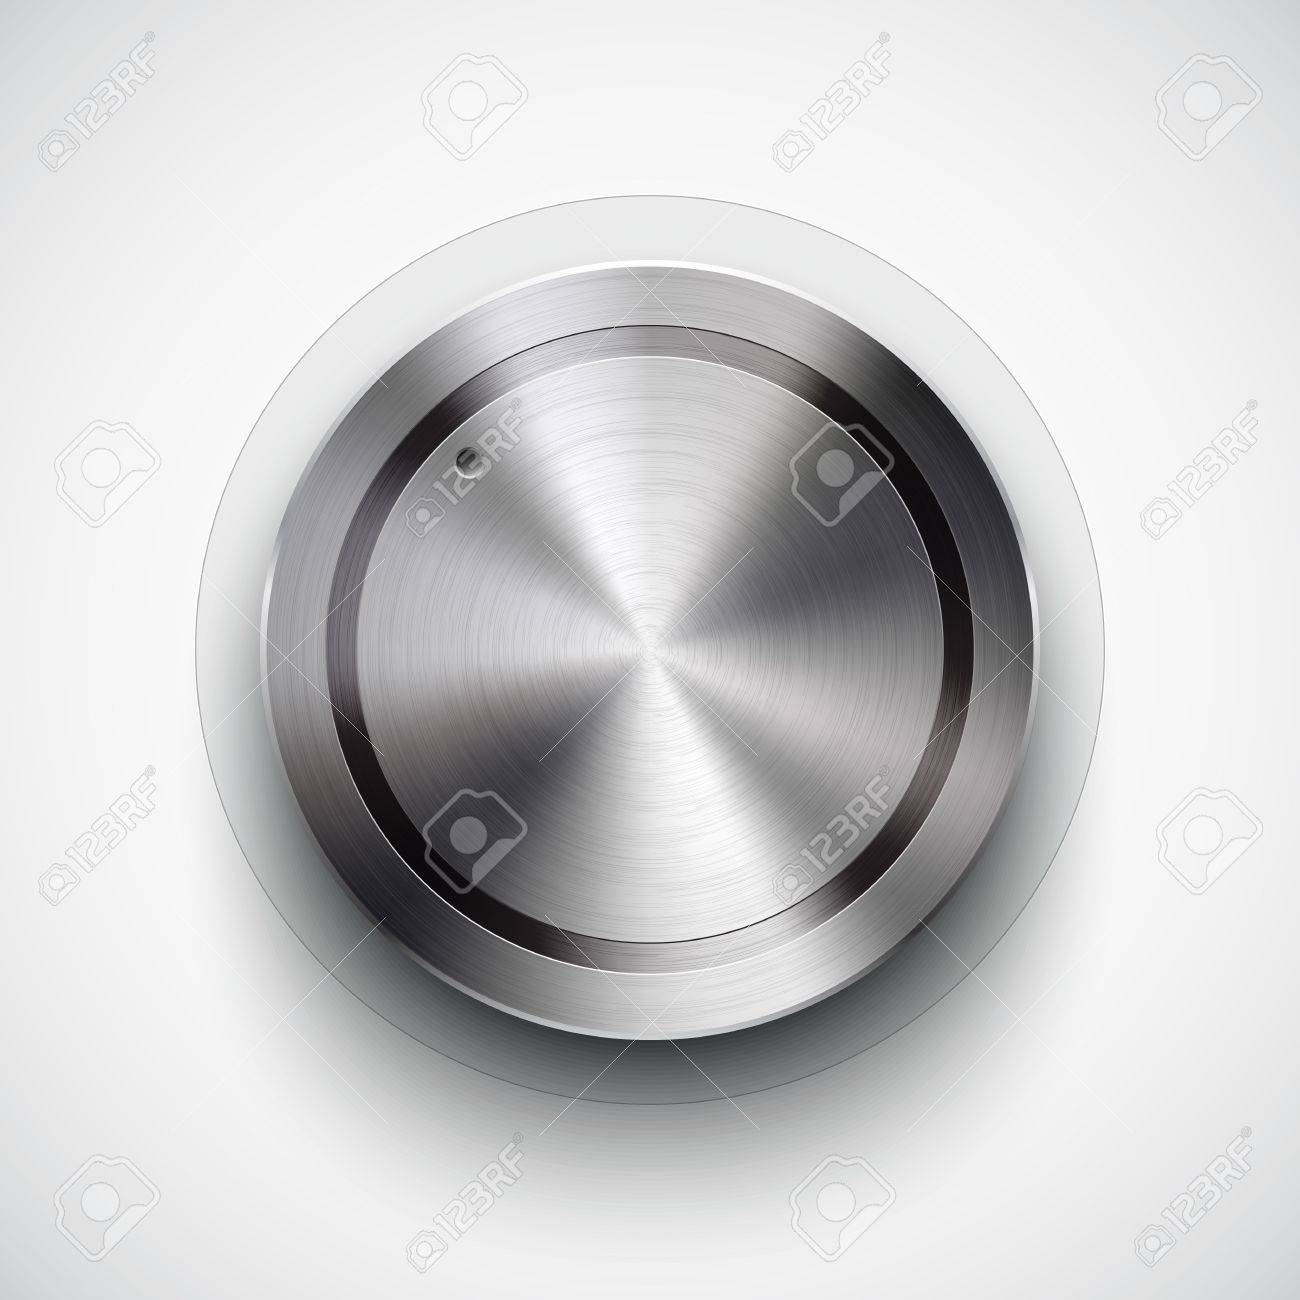 Abstract technology icon, button with metal texture, stainless steel, chrome, silver, realistic shadow and light background for internet sites, web user interfaces, ui and applications, app Stock Vector - 16447124